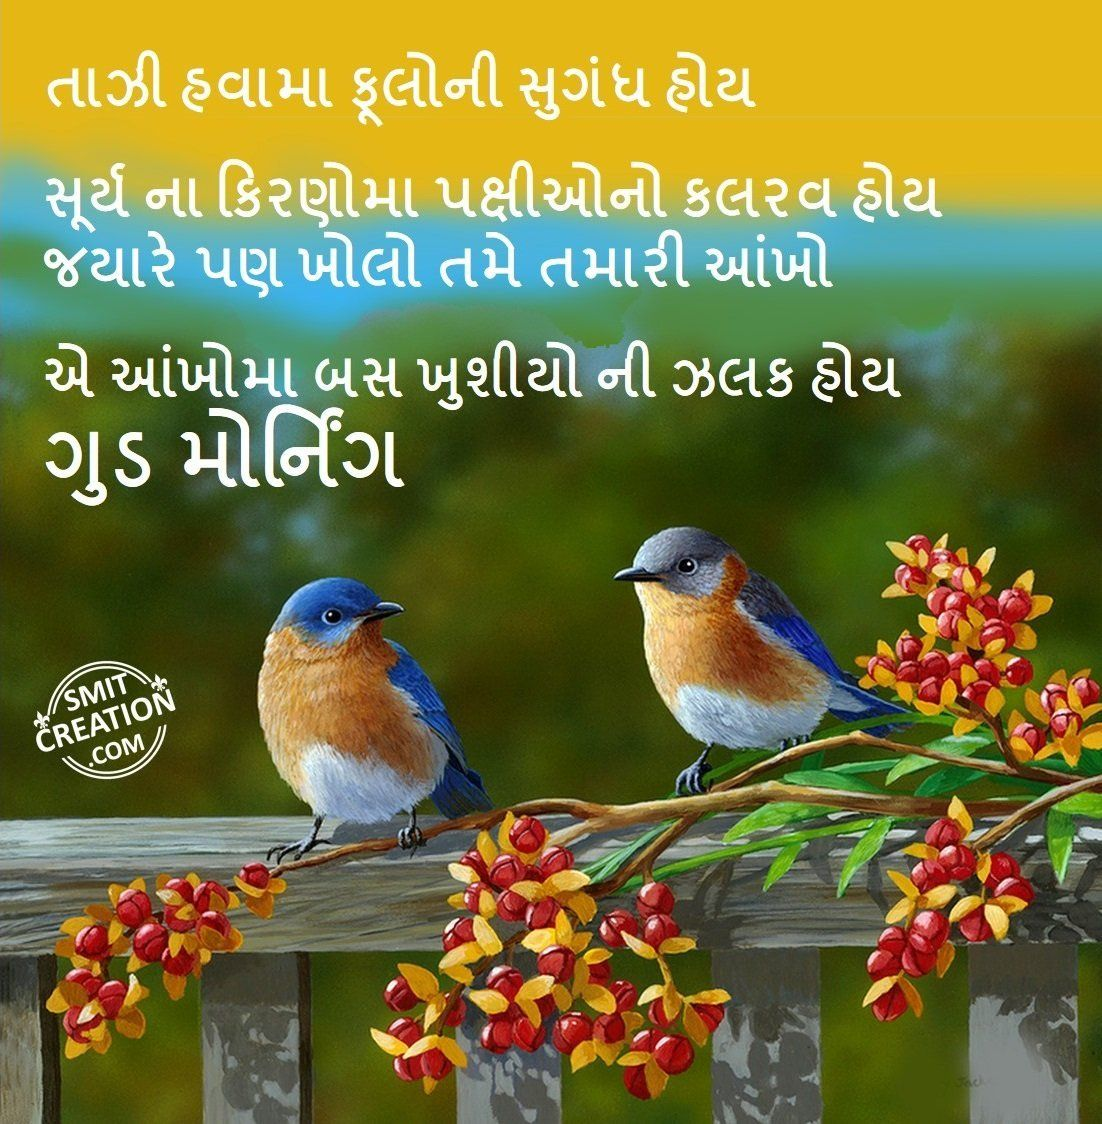 Gujarati Romantic Shayari In Gujarati Font Gujarati Romantic Shayari